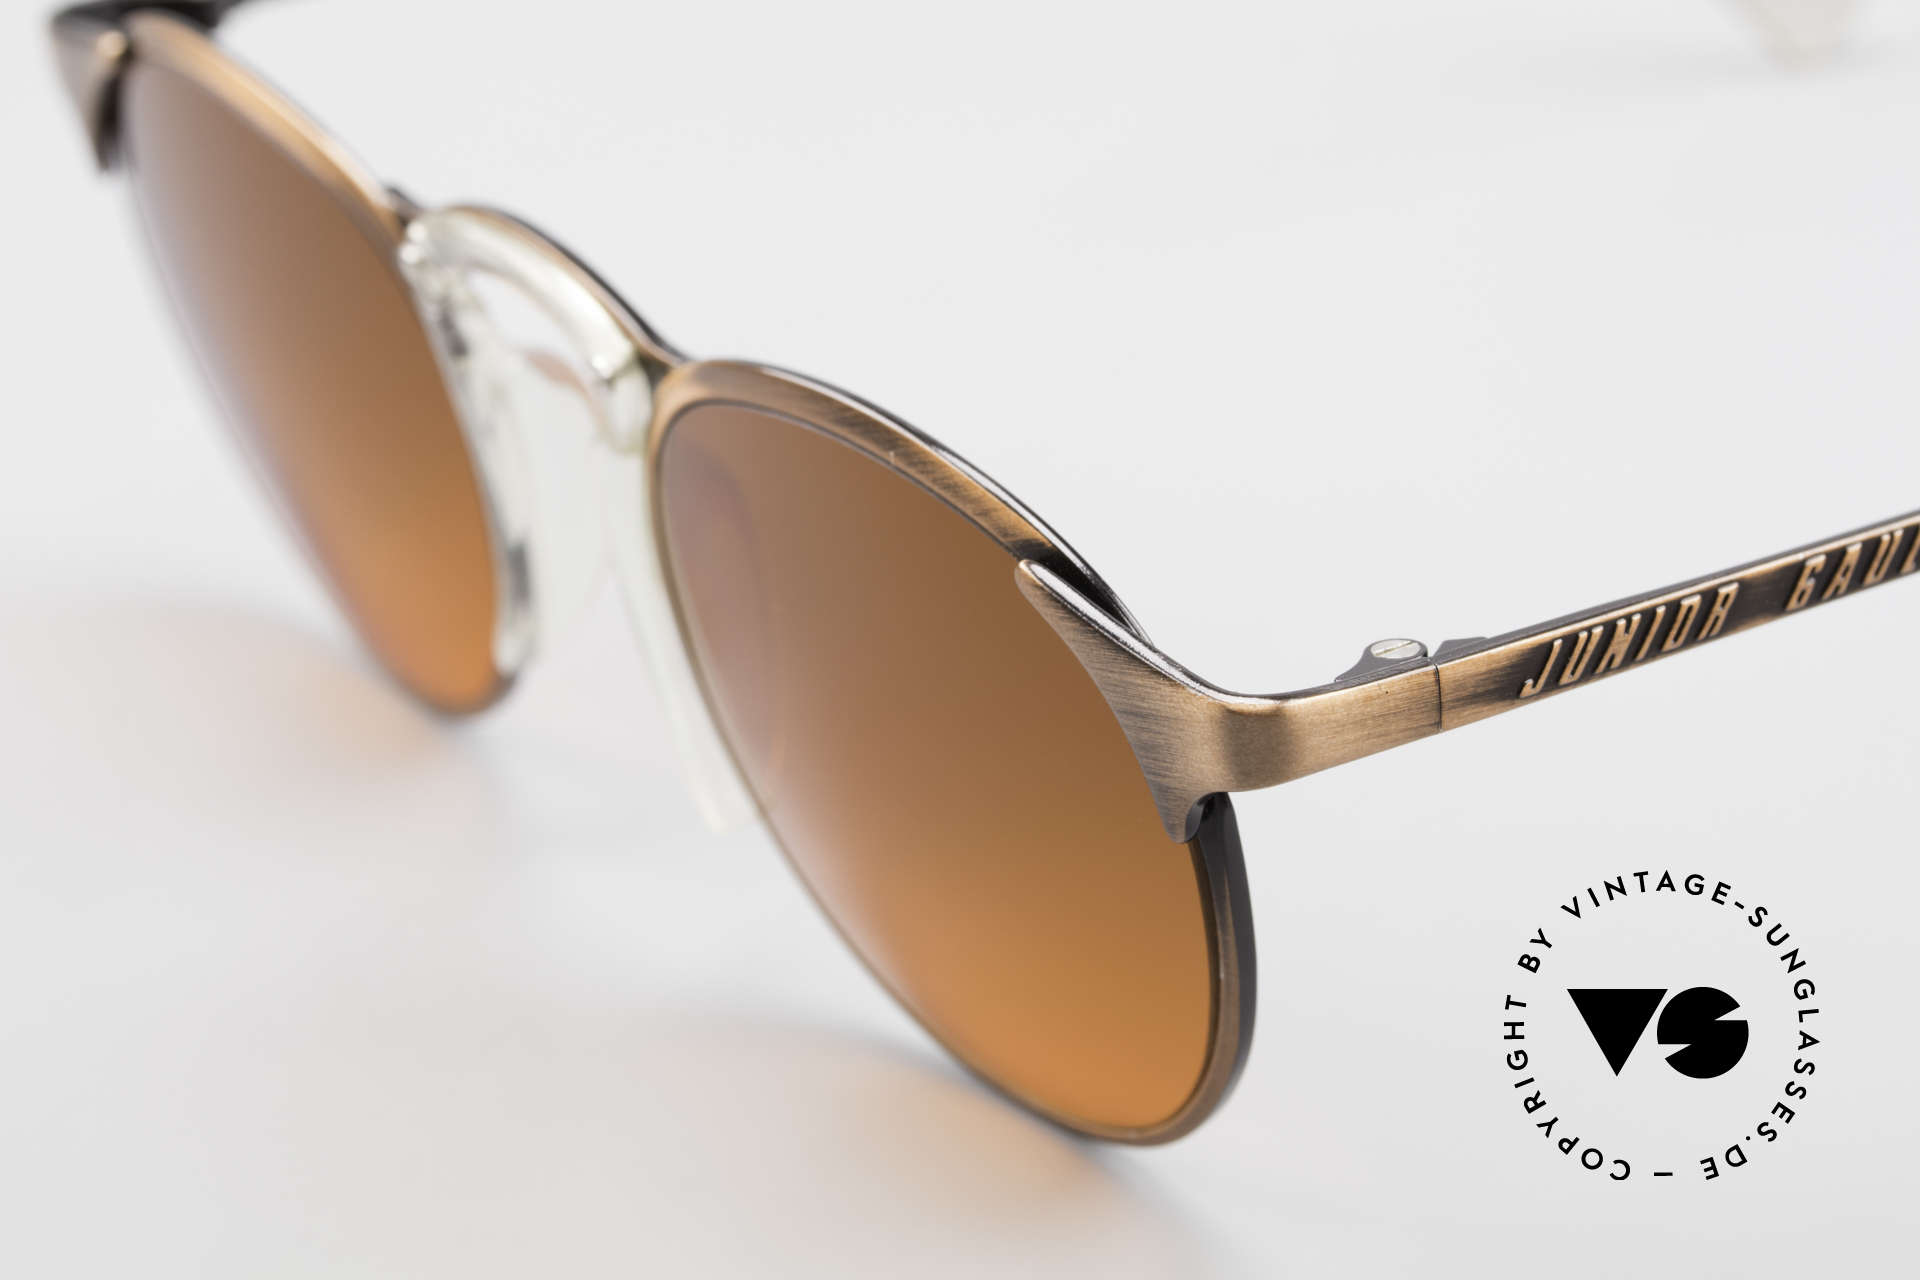 Jean Paul Gaultier 57-0174 90's JPG Panto Sunglasses, unused, NOS (like all our Haute Couture sunglasses), Made for Men